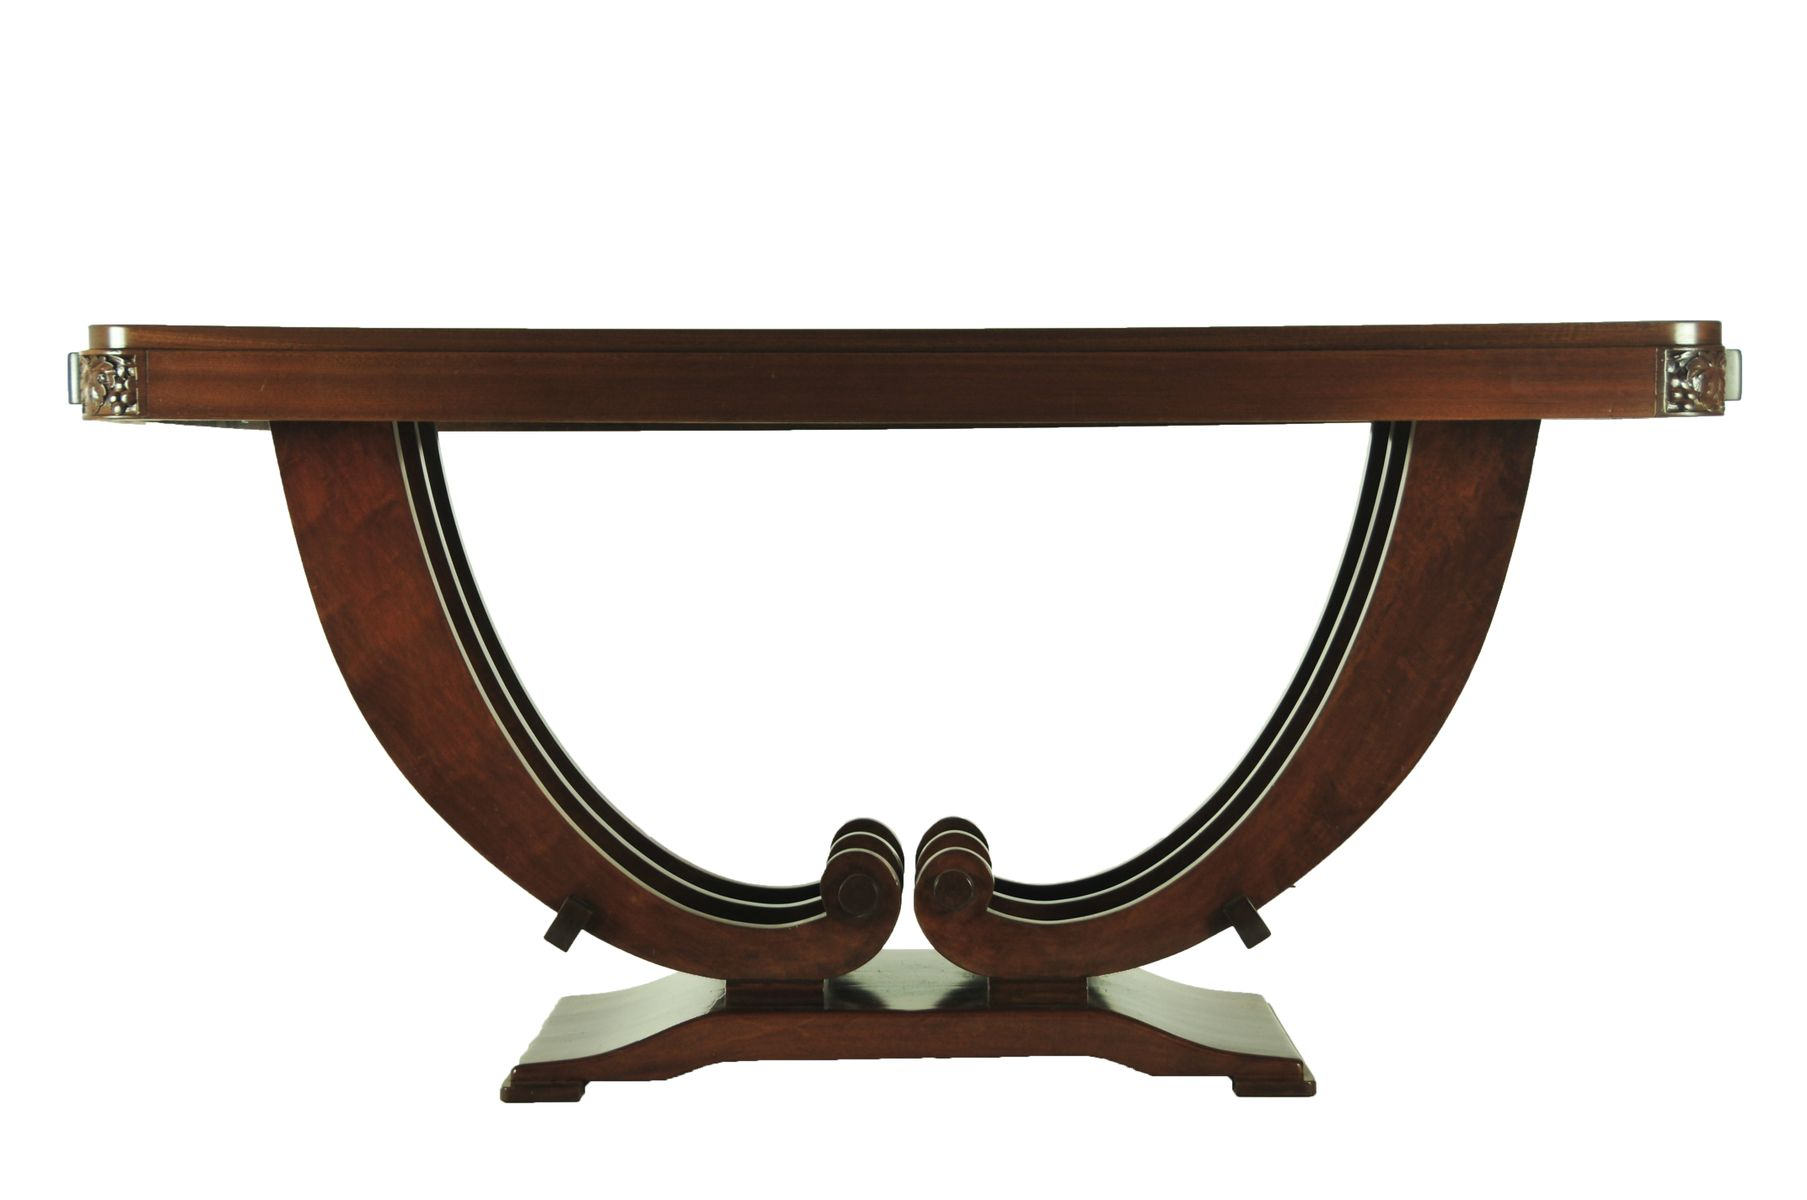 Art Deco Boat Table 1940s for sale at Pamono